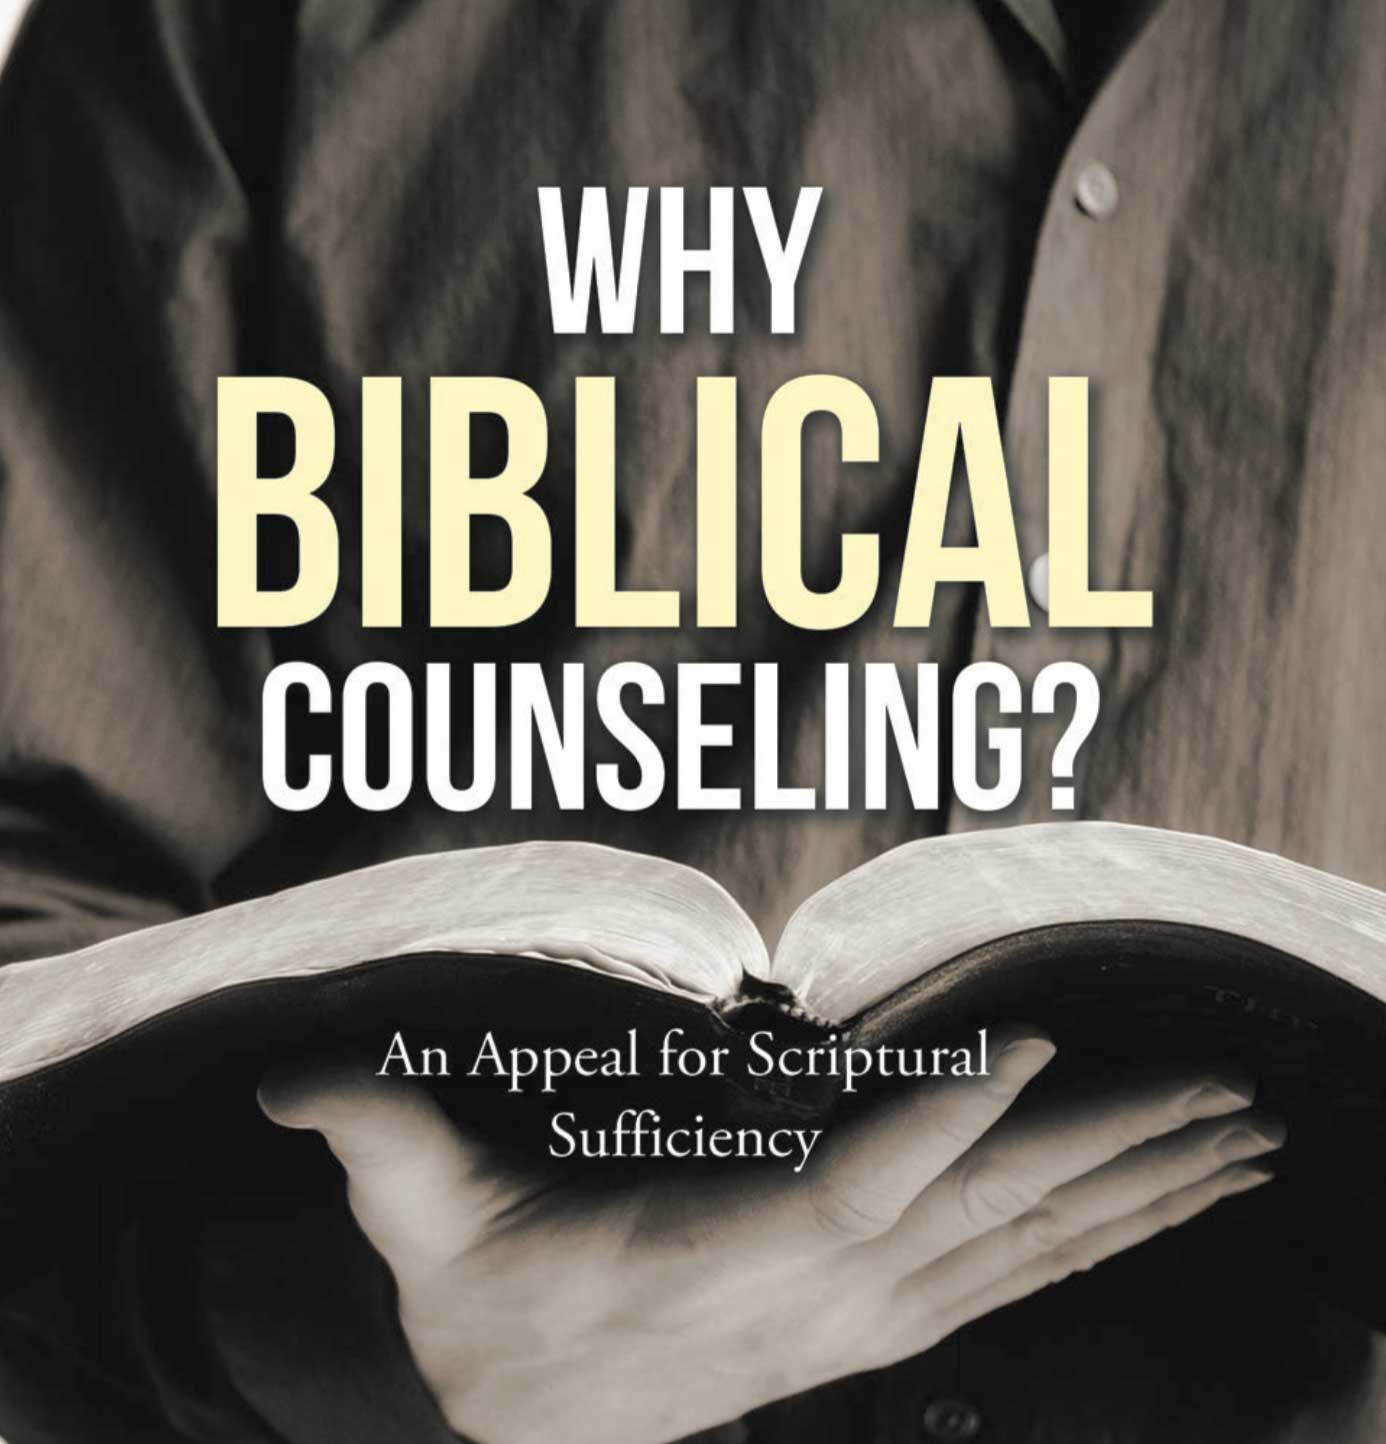 why biblical counseling book cover